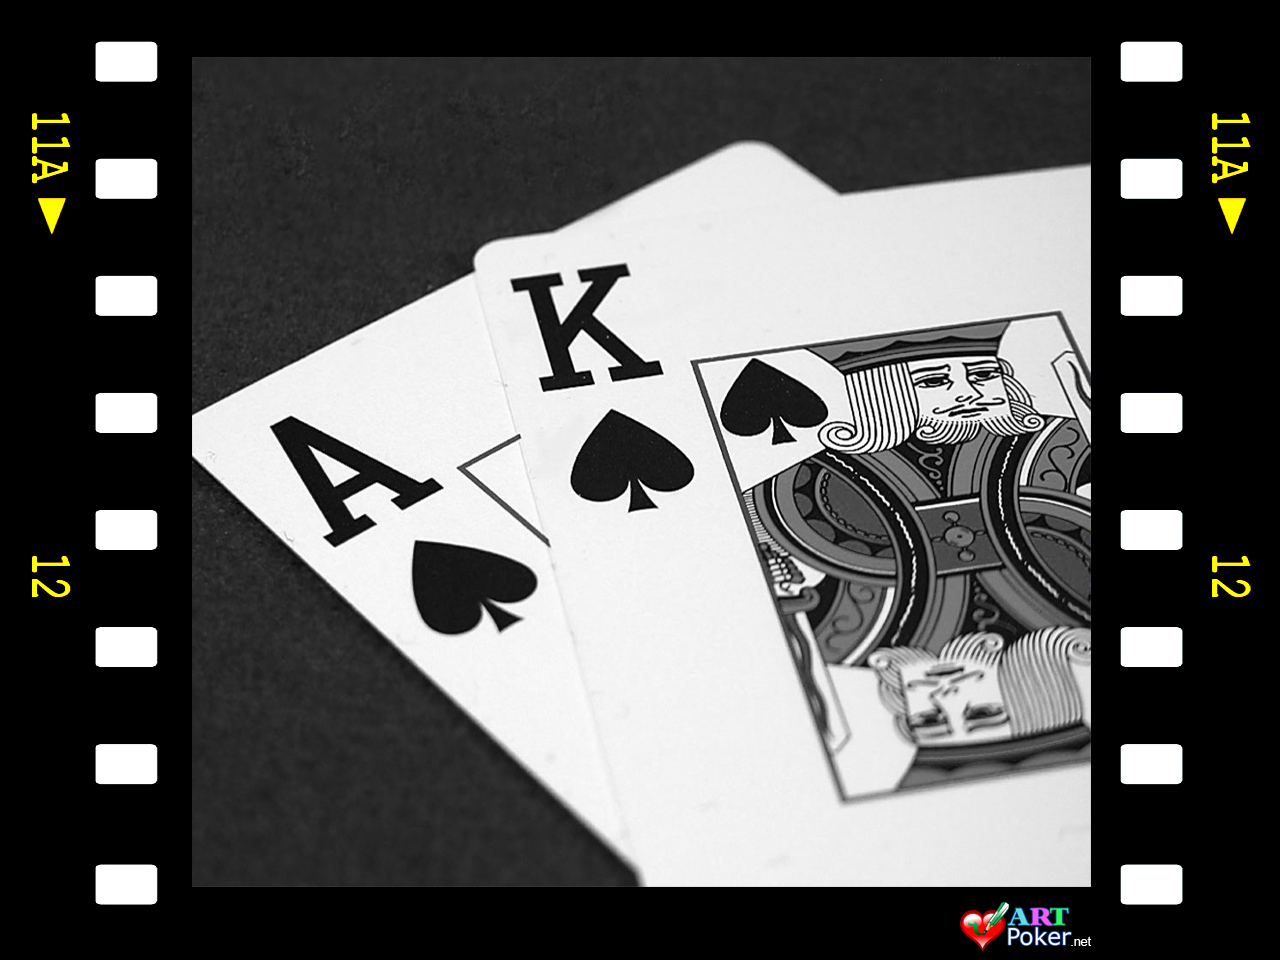 Play online blackjack for real money